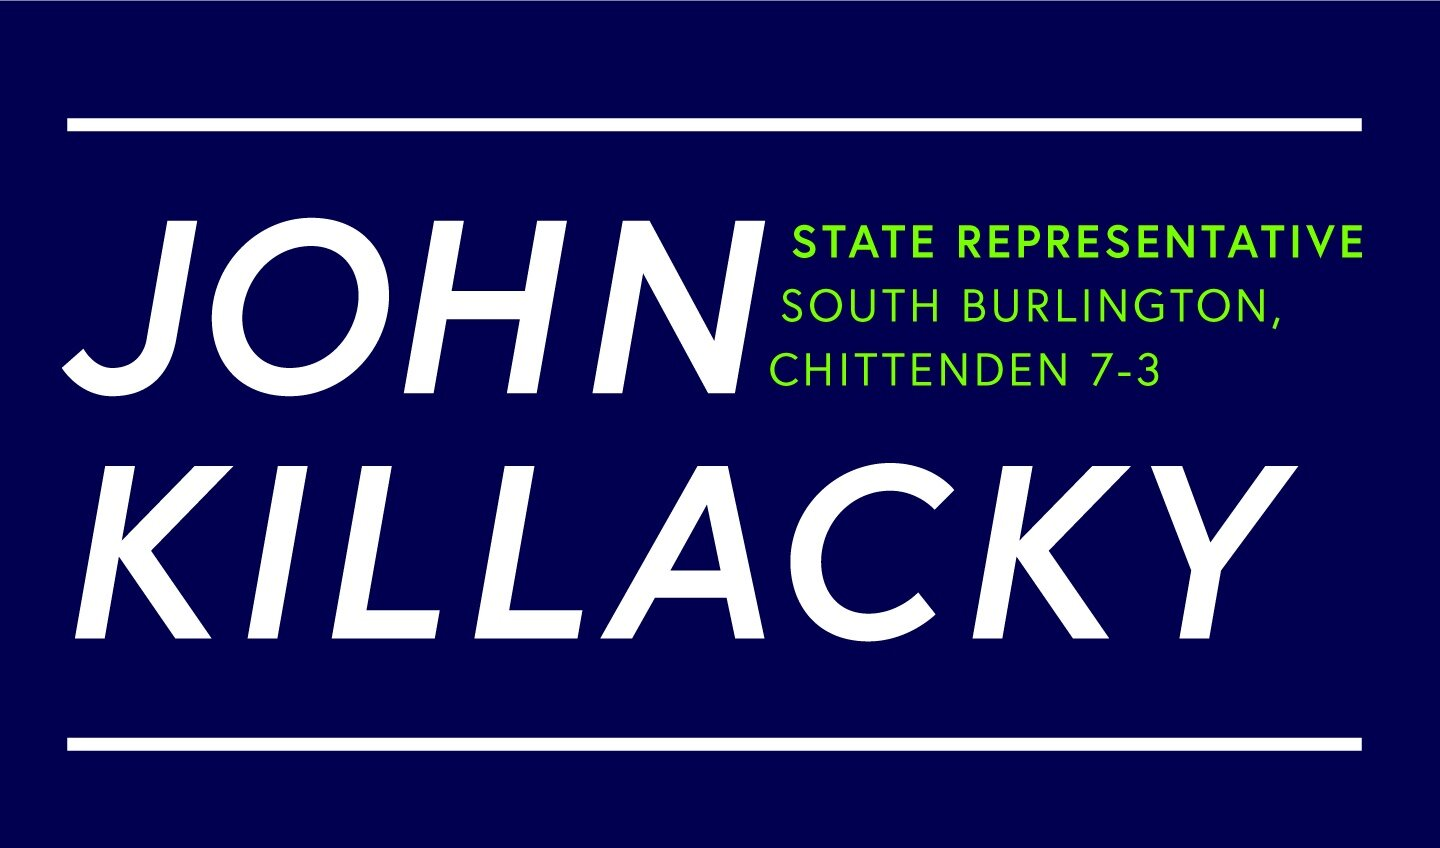 John Killacky for State Representative